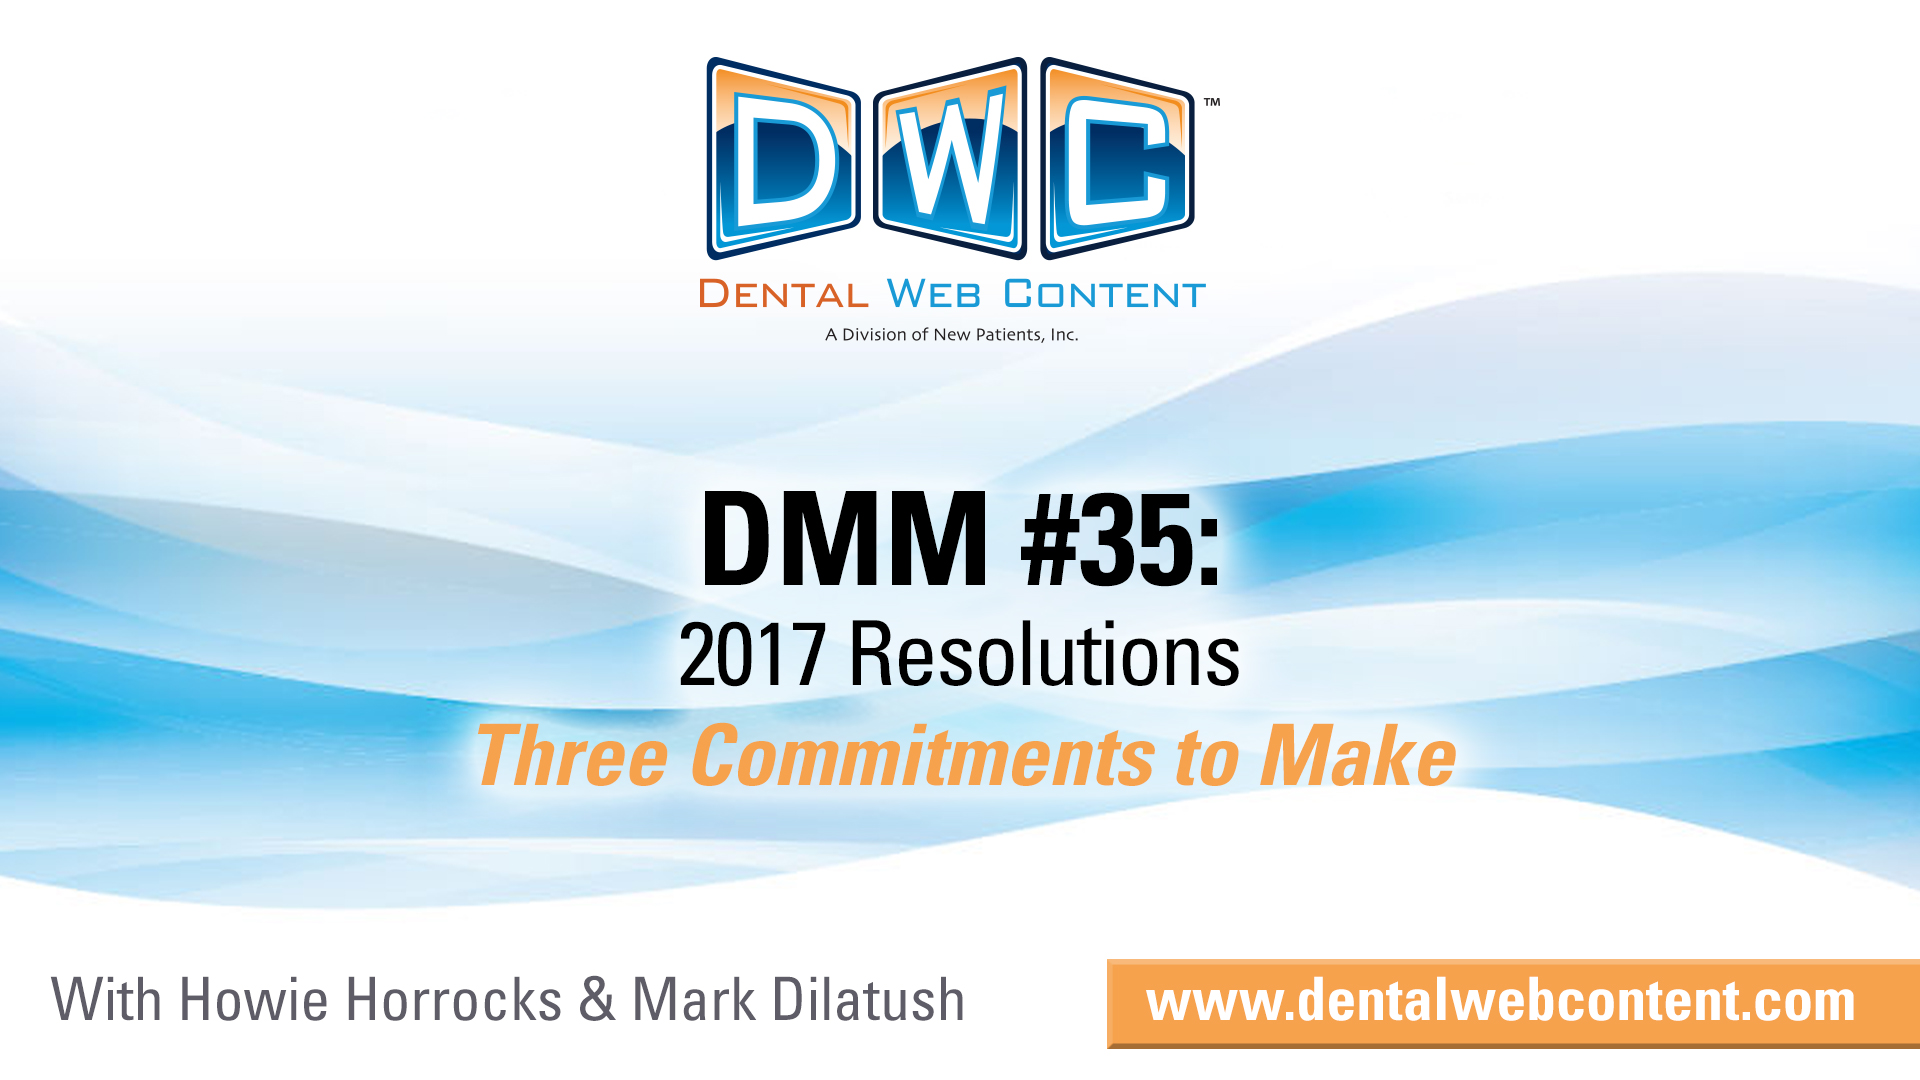 2017 Resolutions - Three Commitments to Make